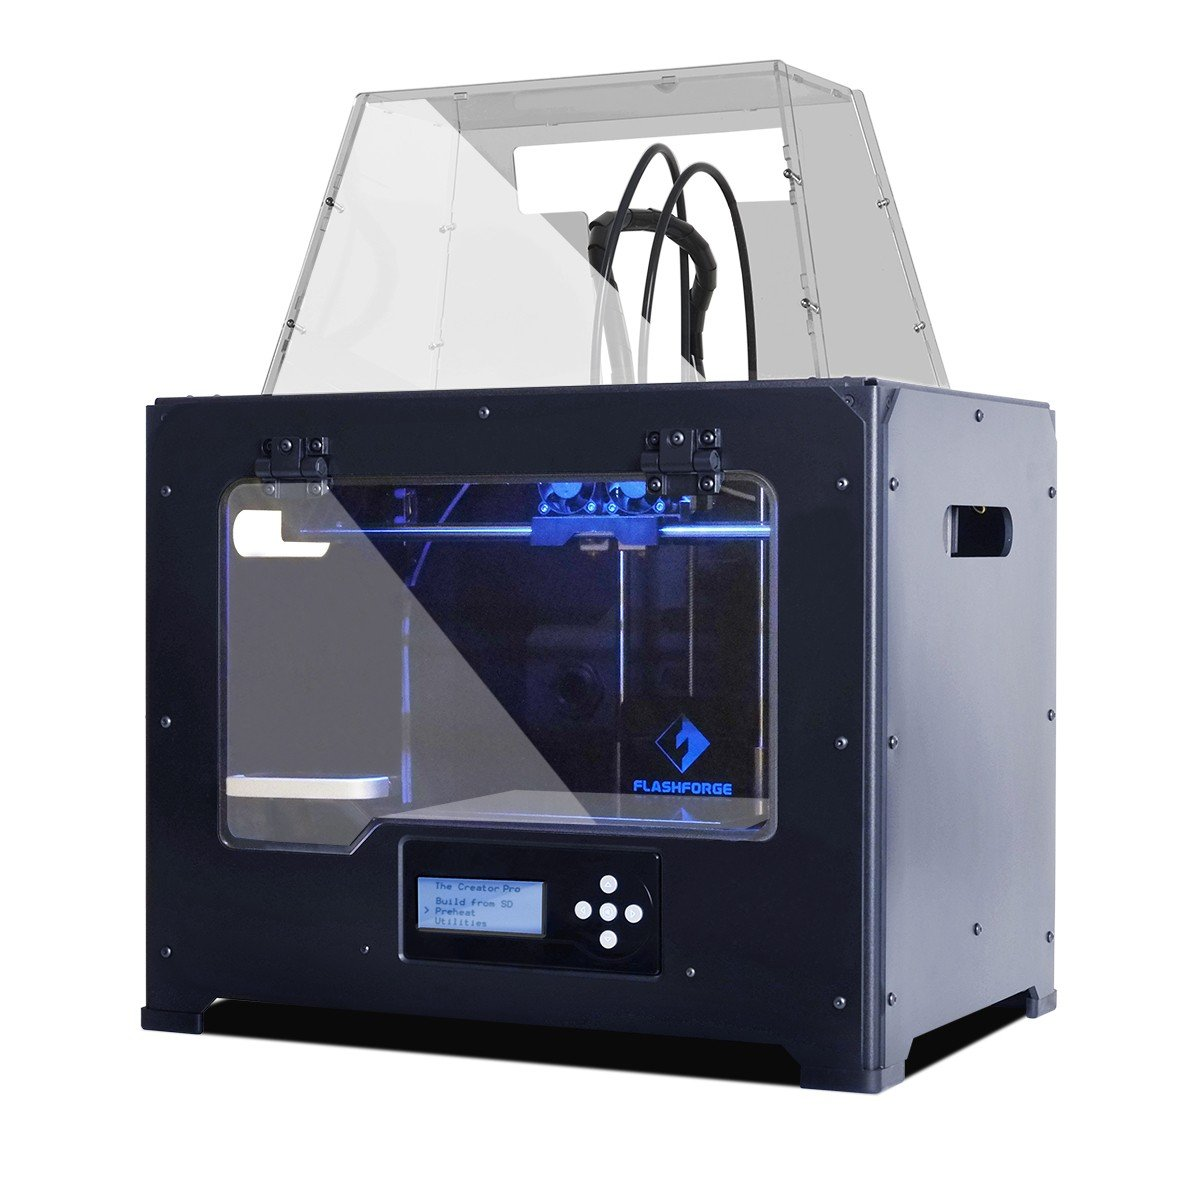 FlashForge USA 3D Printer Full Chamber Dual Extruder for PLA/ABS Printing-Metal Case with Acrylic Covers (Creator PRO)